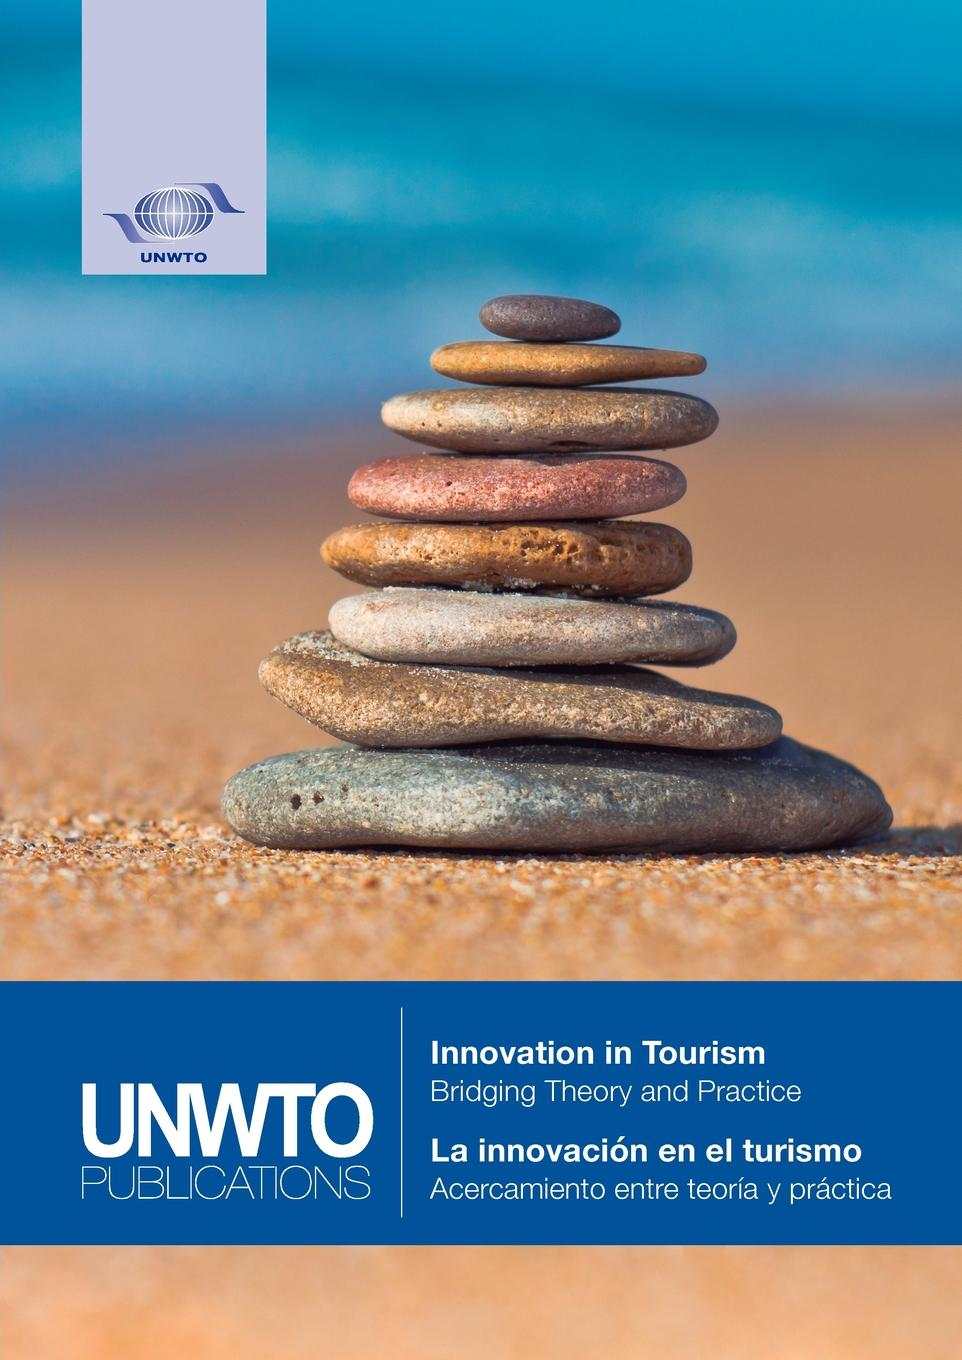 World Tourism Organization (UNWTO) Innovation in Tourism - Bridging Theory and Practice // La innovacion en el turismo - Acercamiento entre teoria y practica